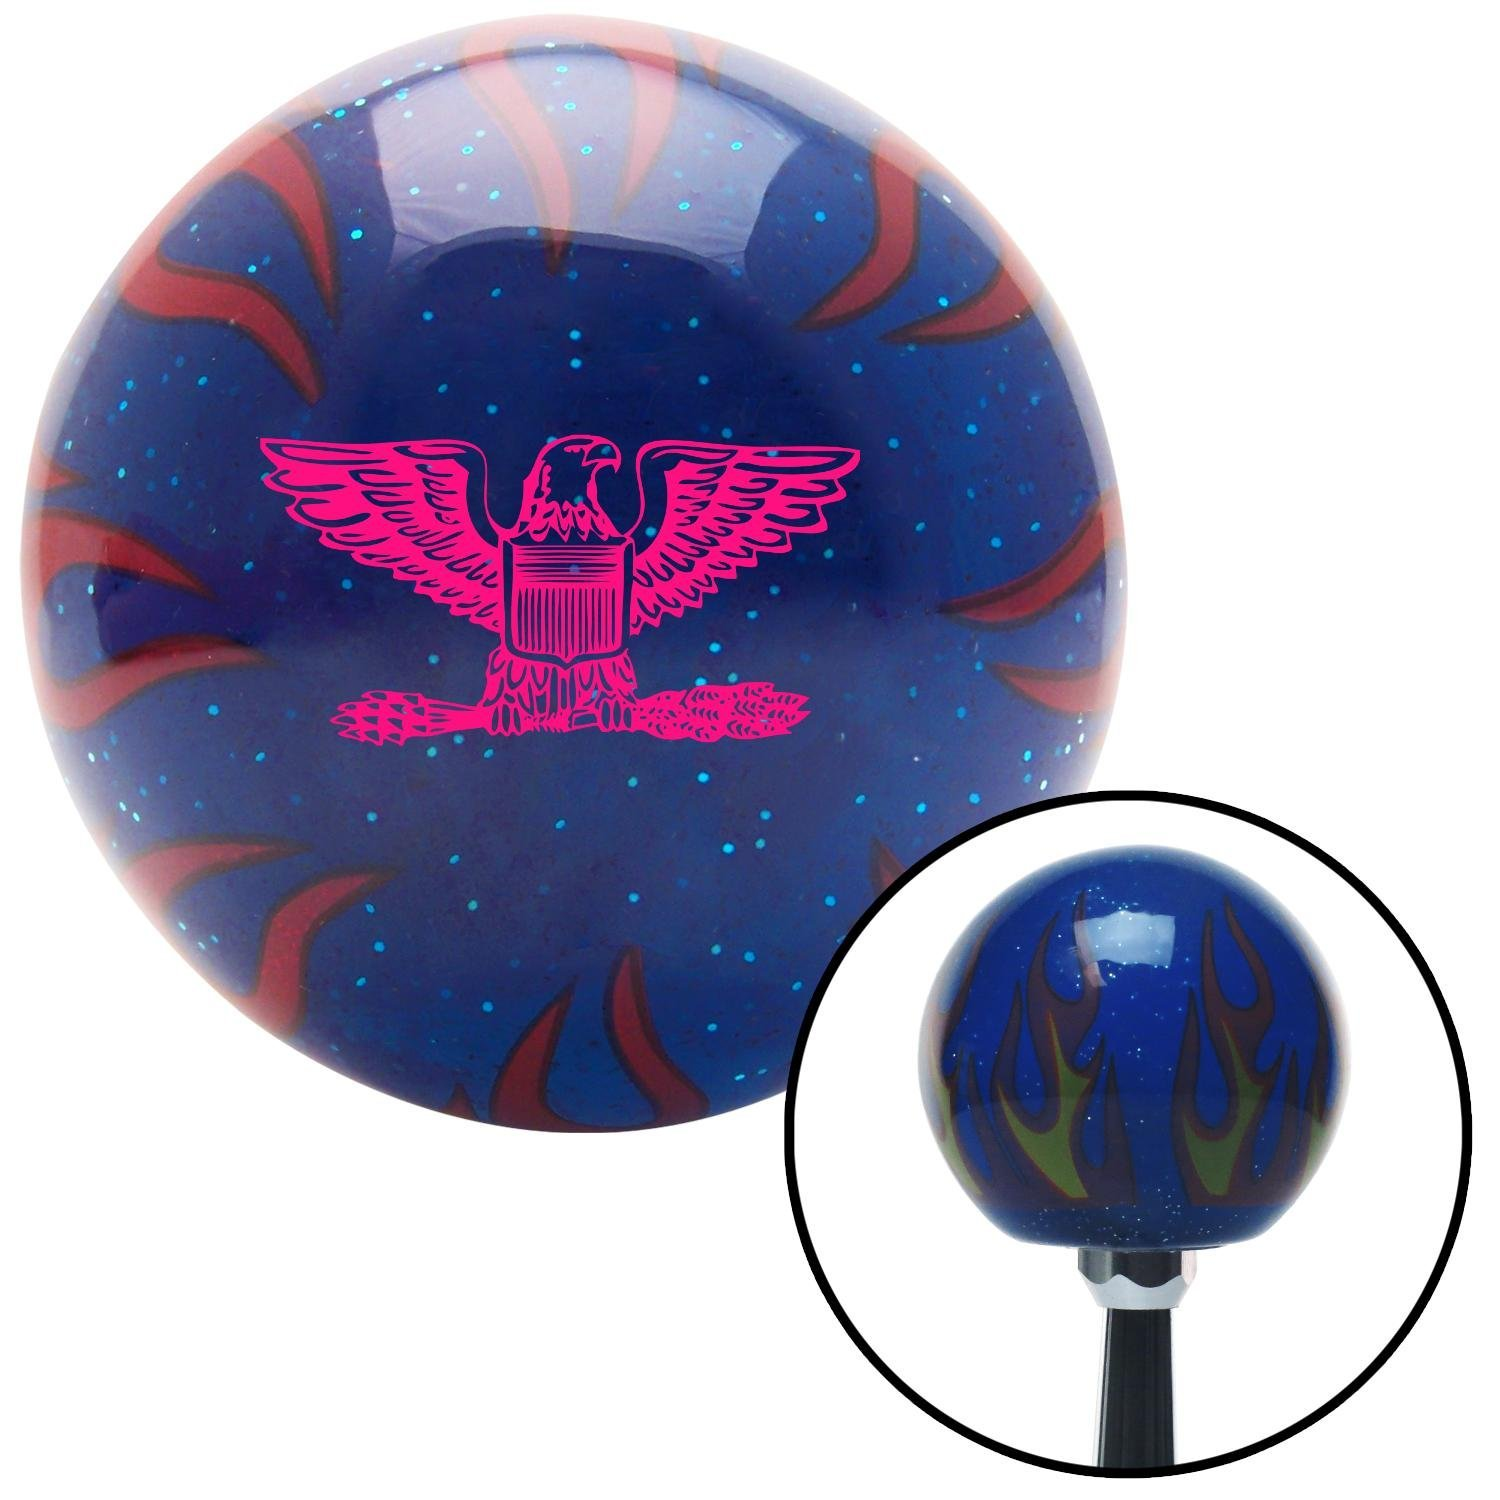 Pink Colonel American Shifter 249702 Blue Flame Metal Flake Shift Knob with M16 x 1.5 Insert